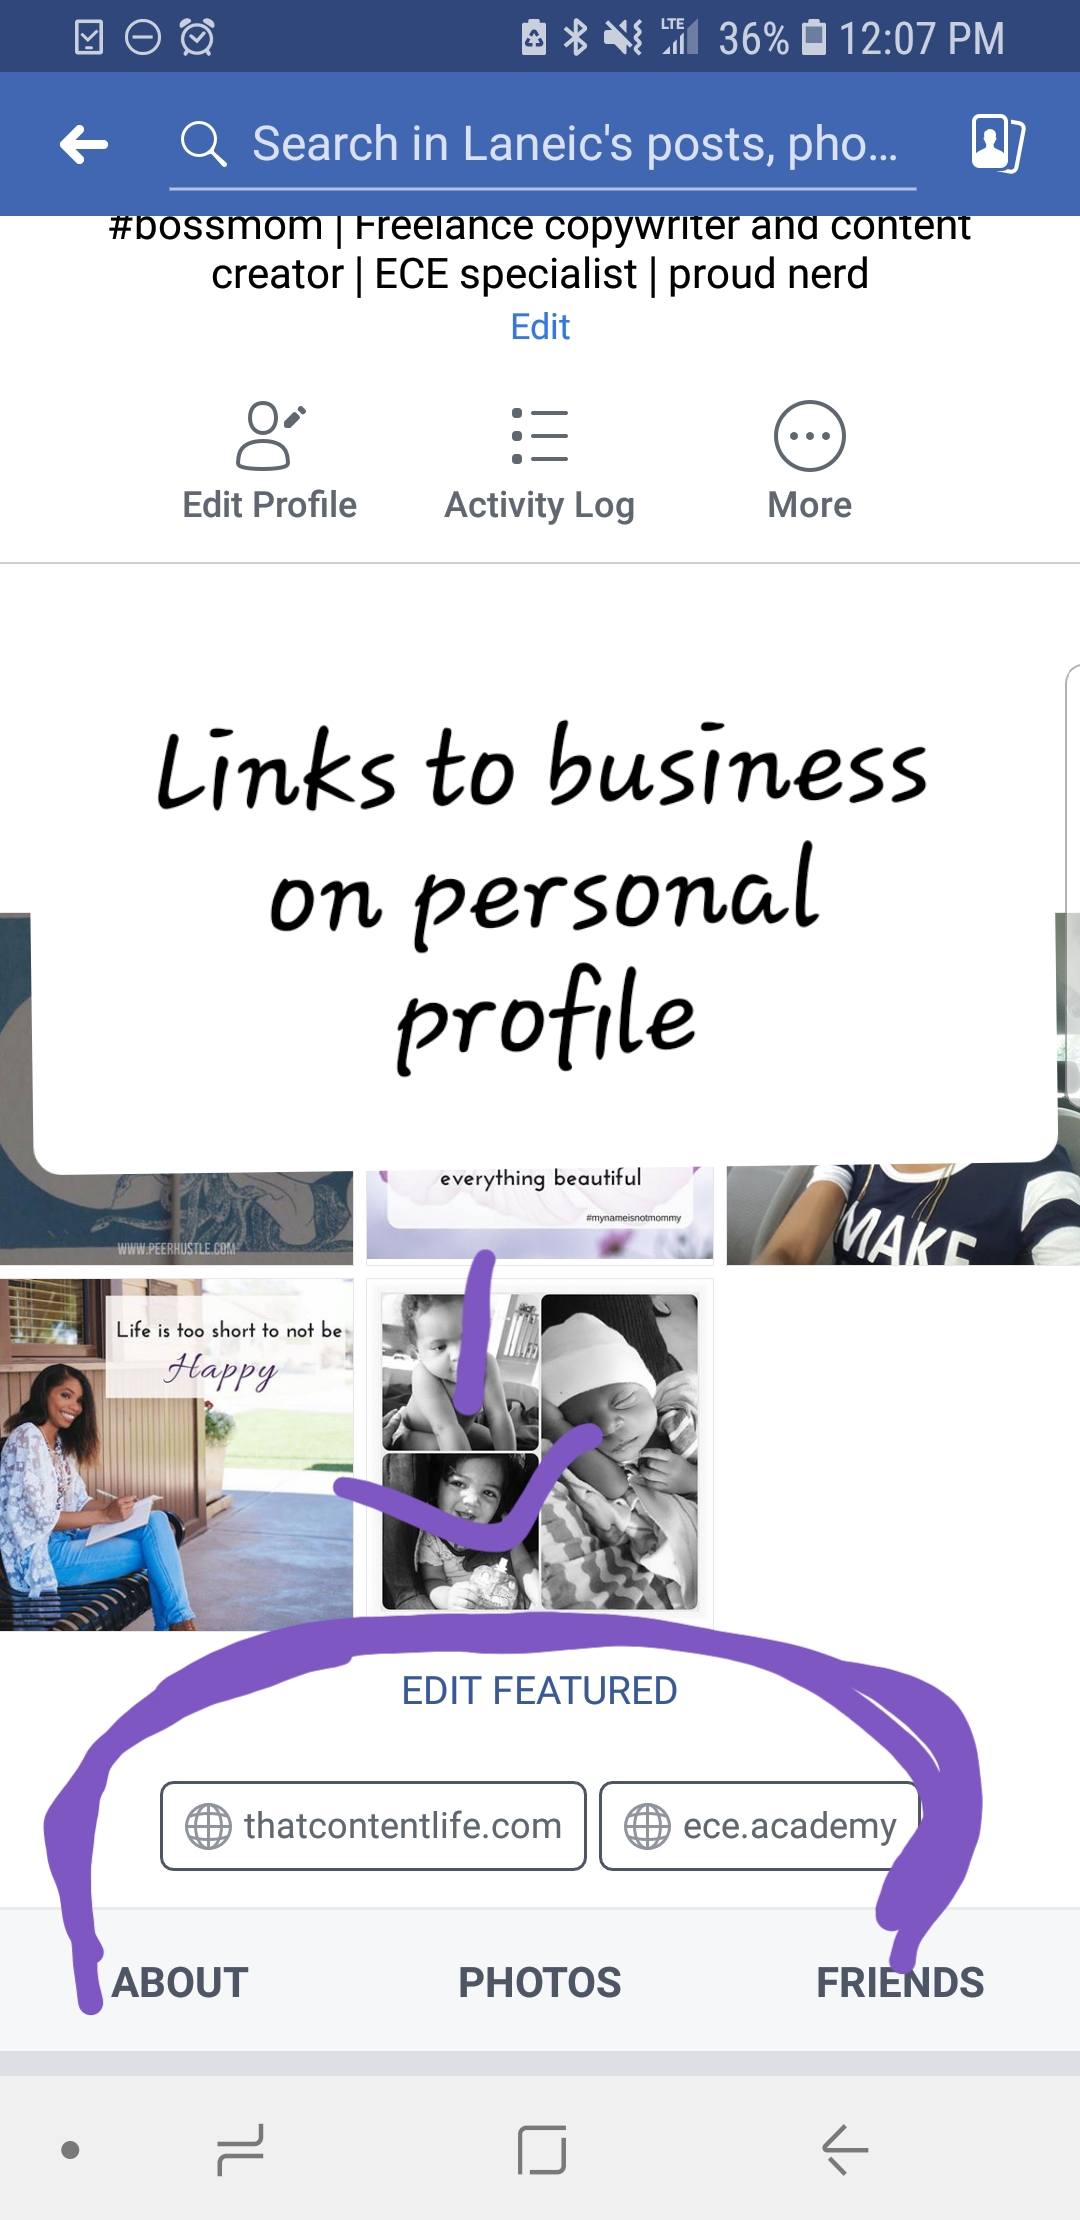 Optimizing your personal profile page for your business